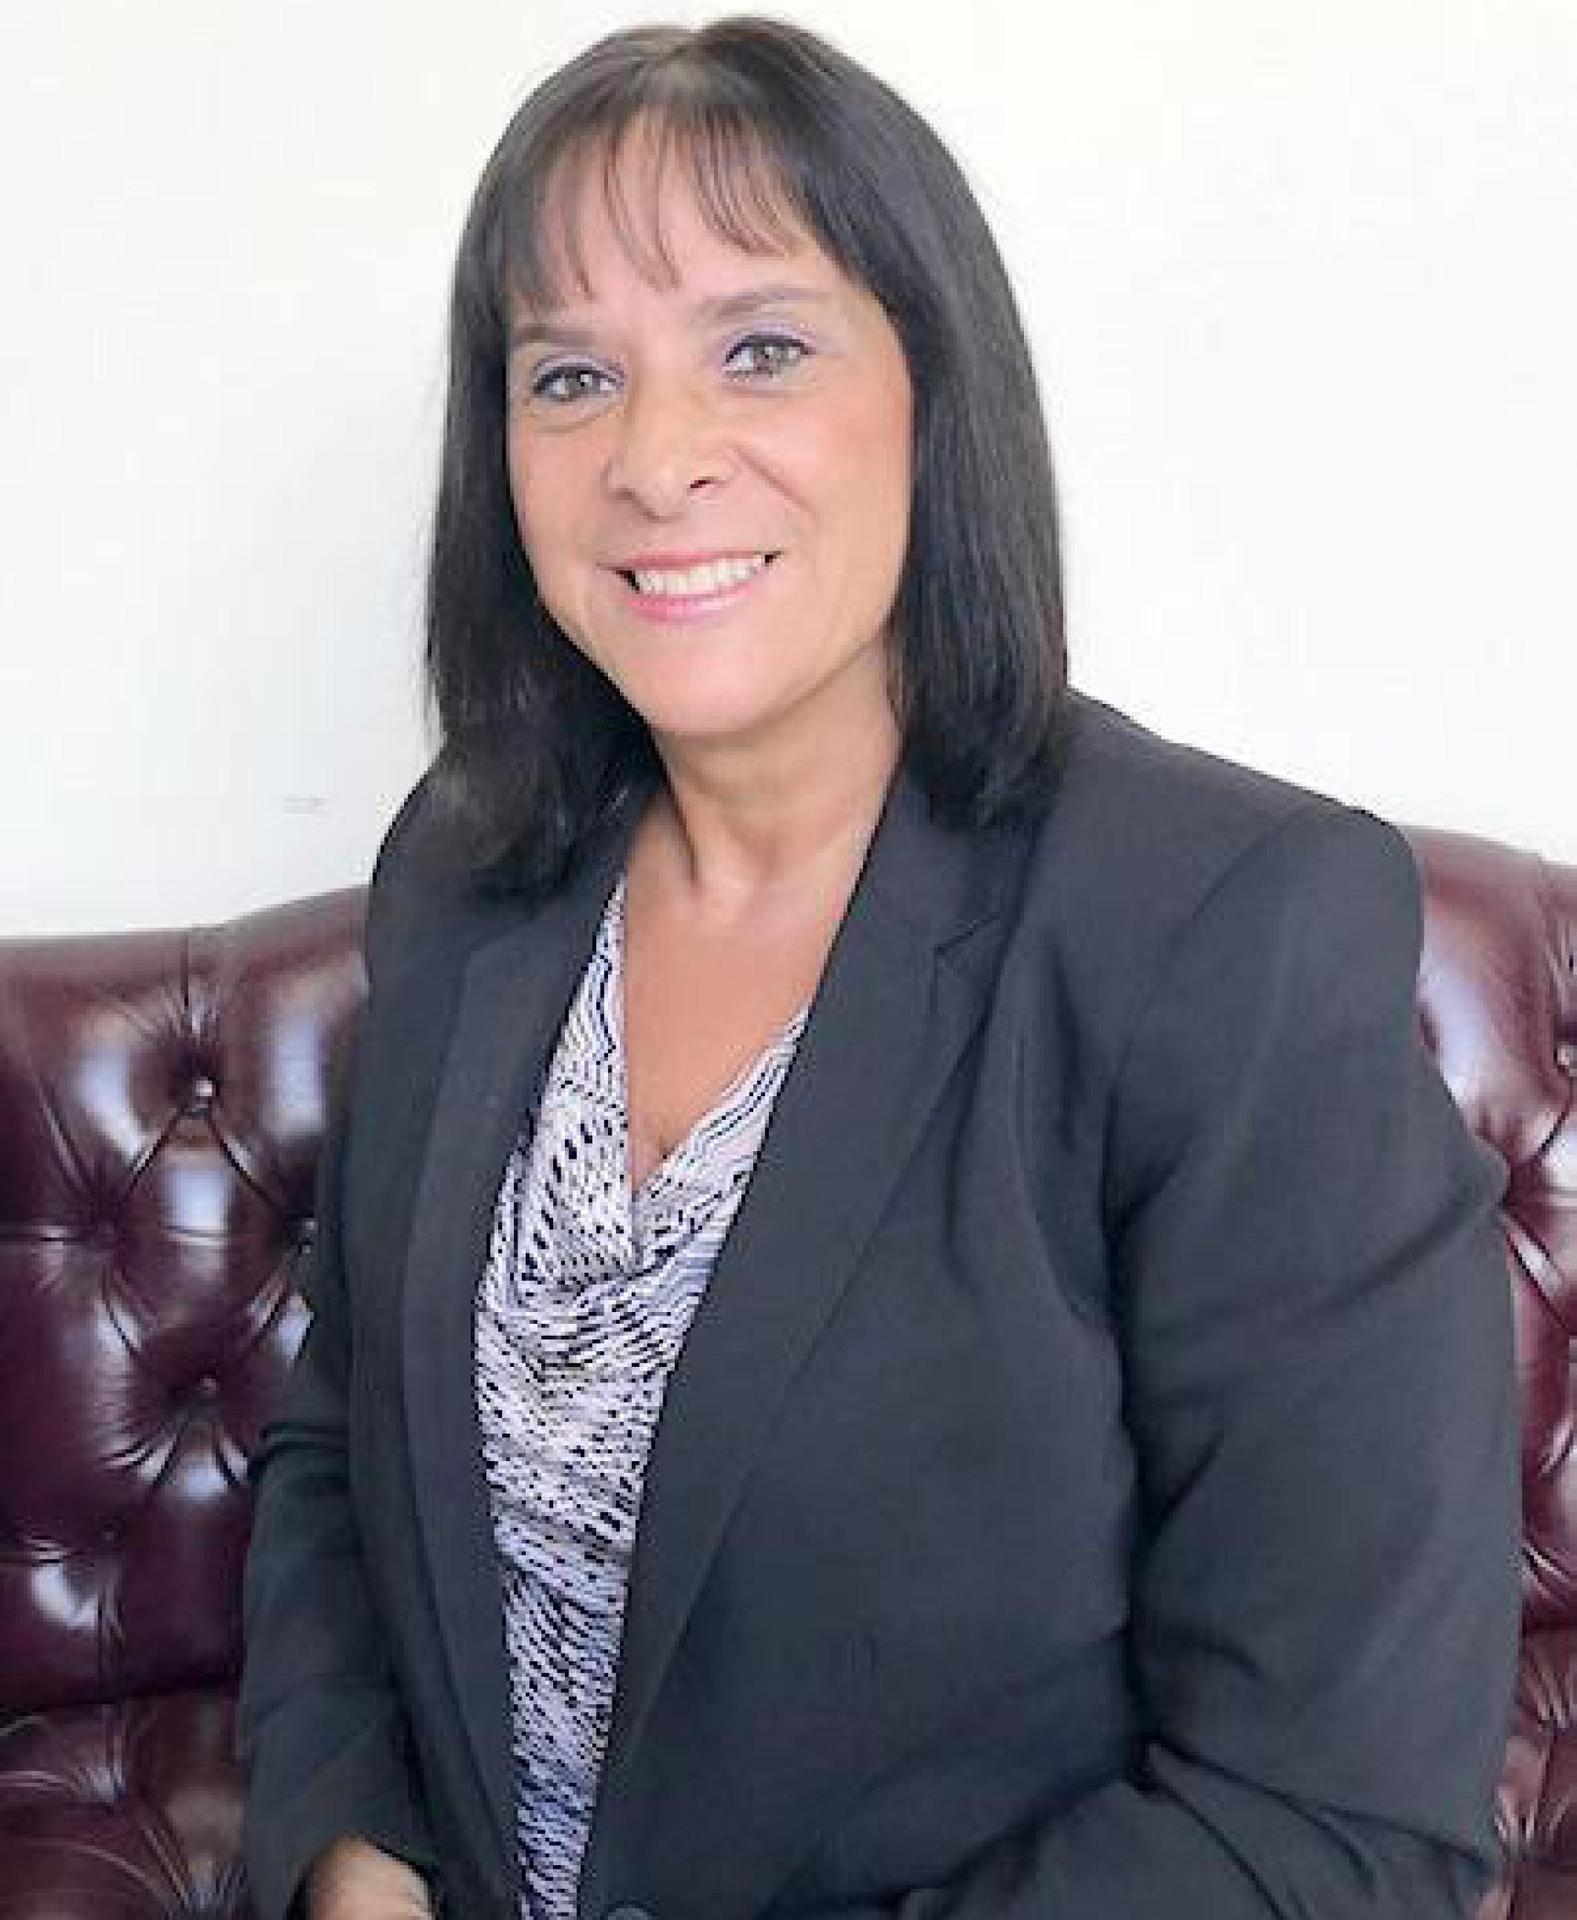 Formal photo, Cynthia Sarnie, sitting in a large leather chair